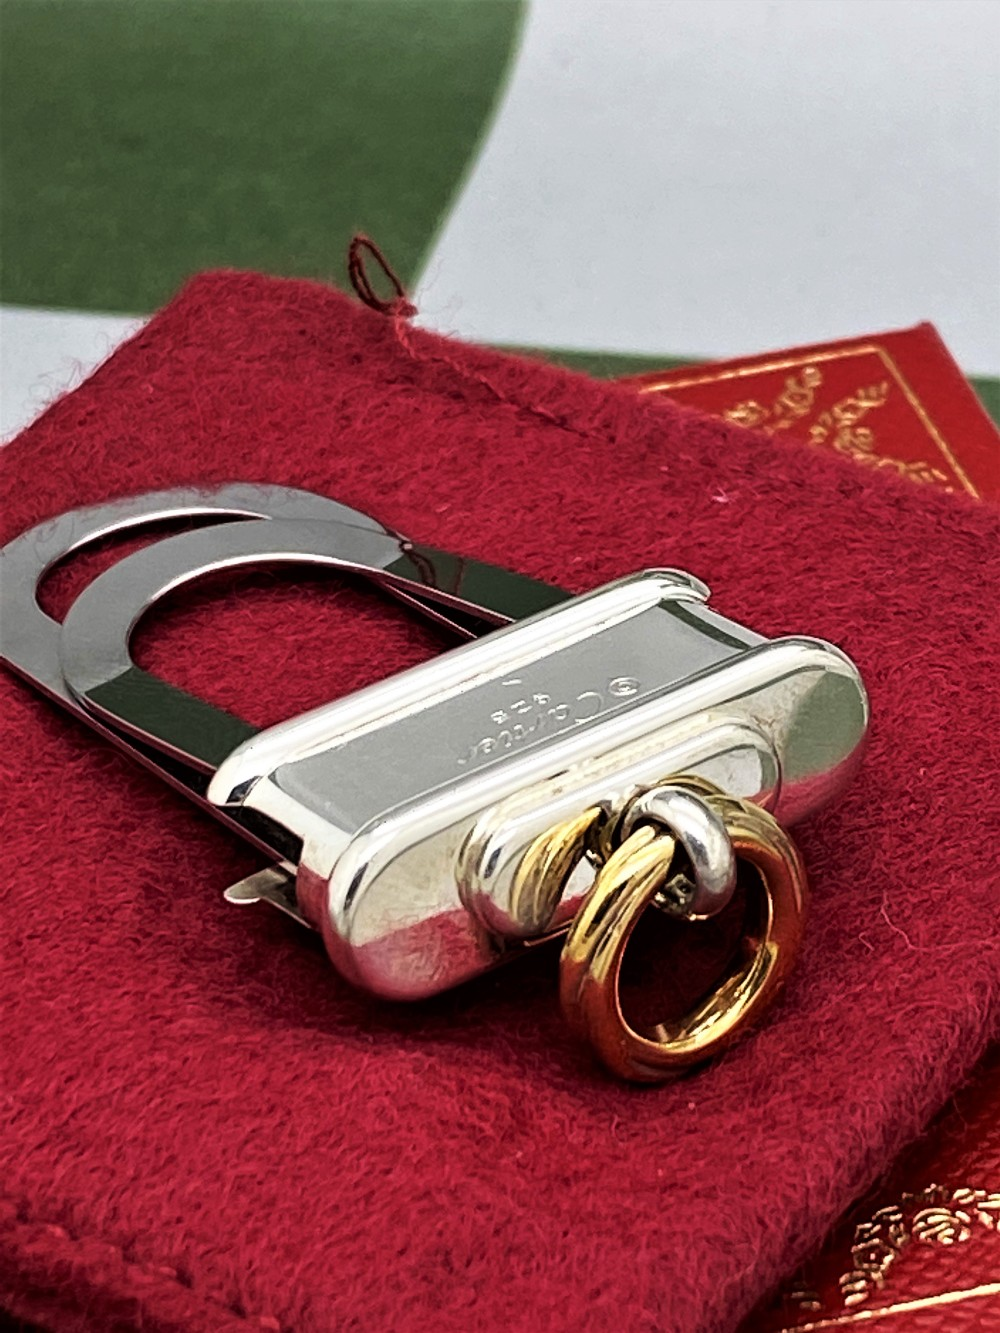 Cartier Paris -Extremely Rare Sterling Silver 925 & Gold Key Ring / Money Clip - Image 3 of 9